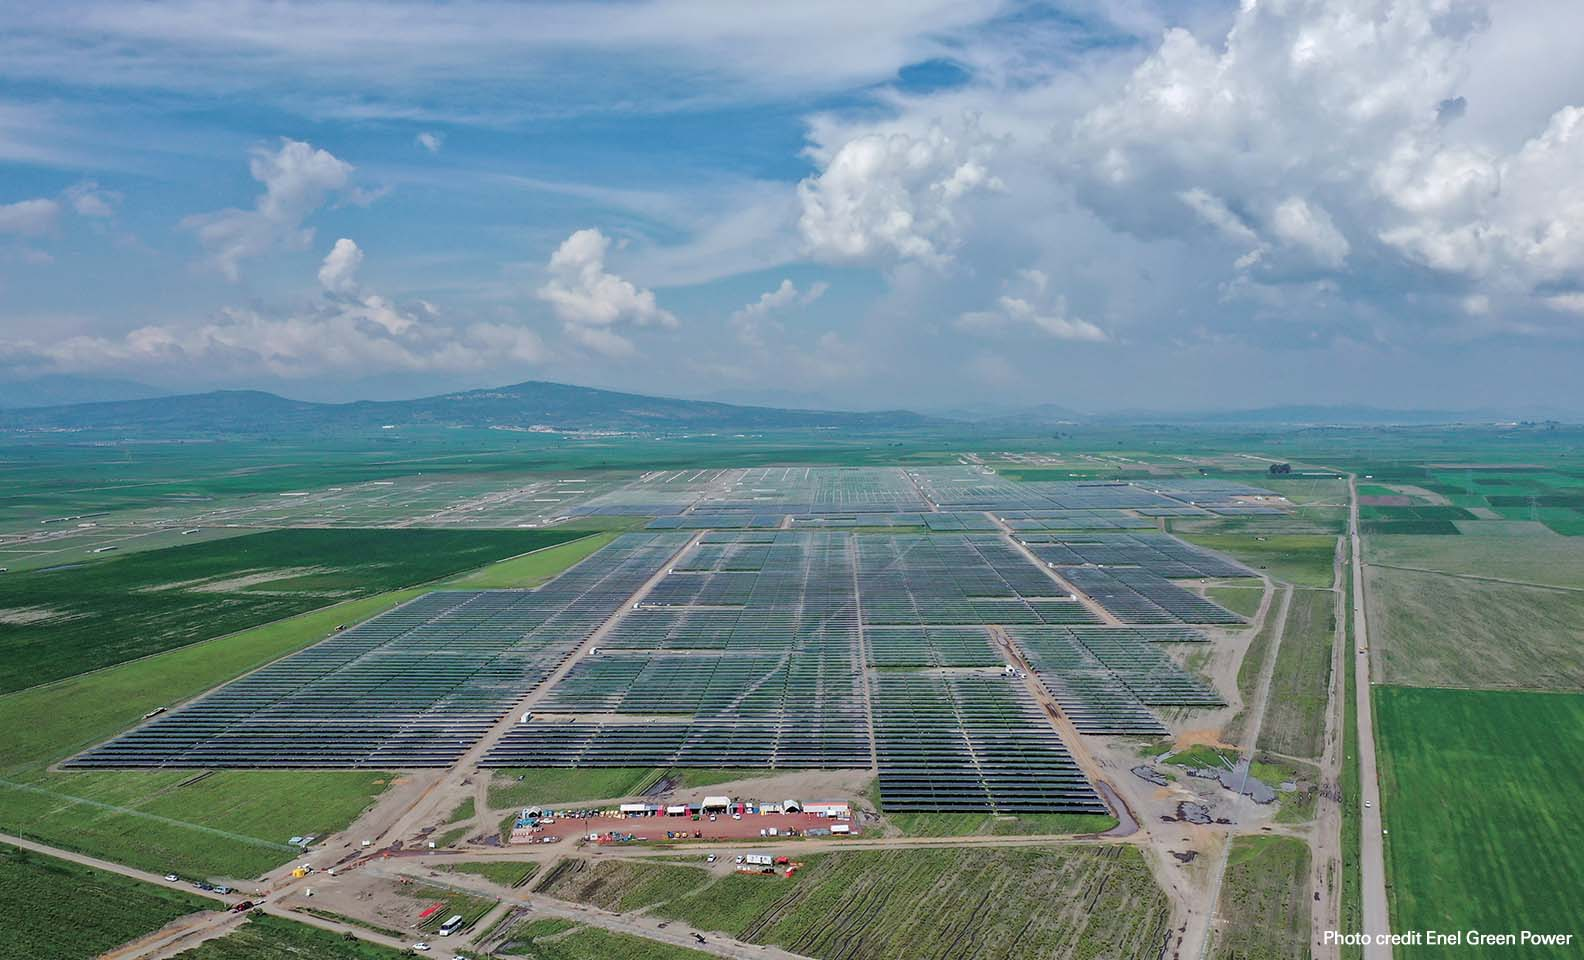 Solar plant overview